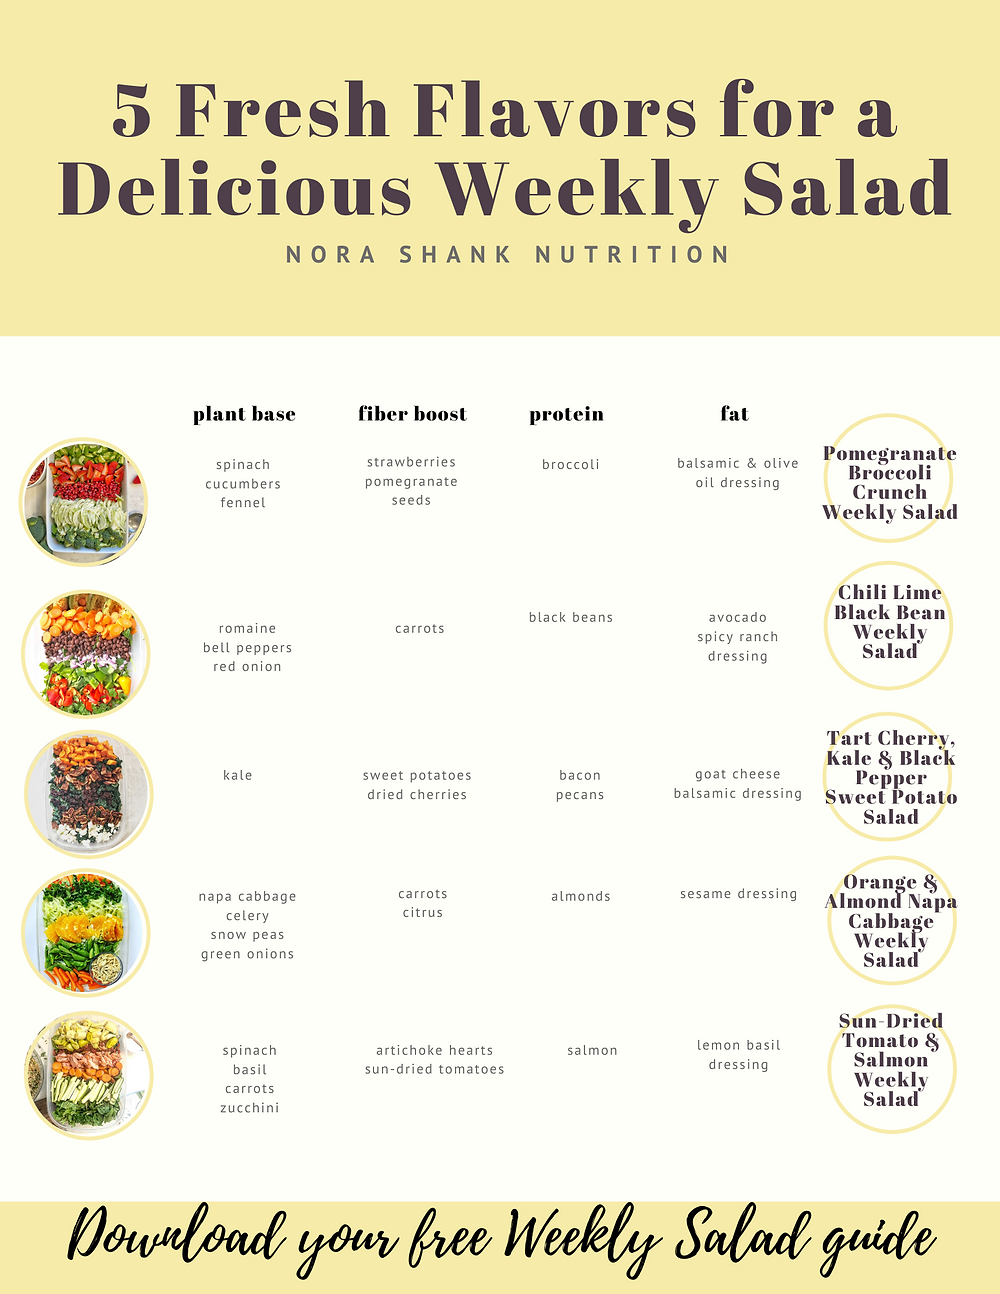 5 Themes for Weekly Salads by Nora Shank Nutrition